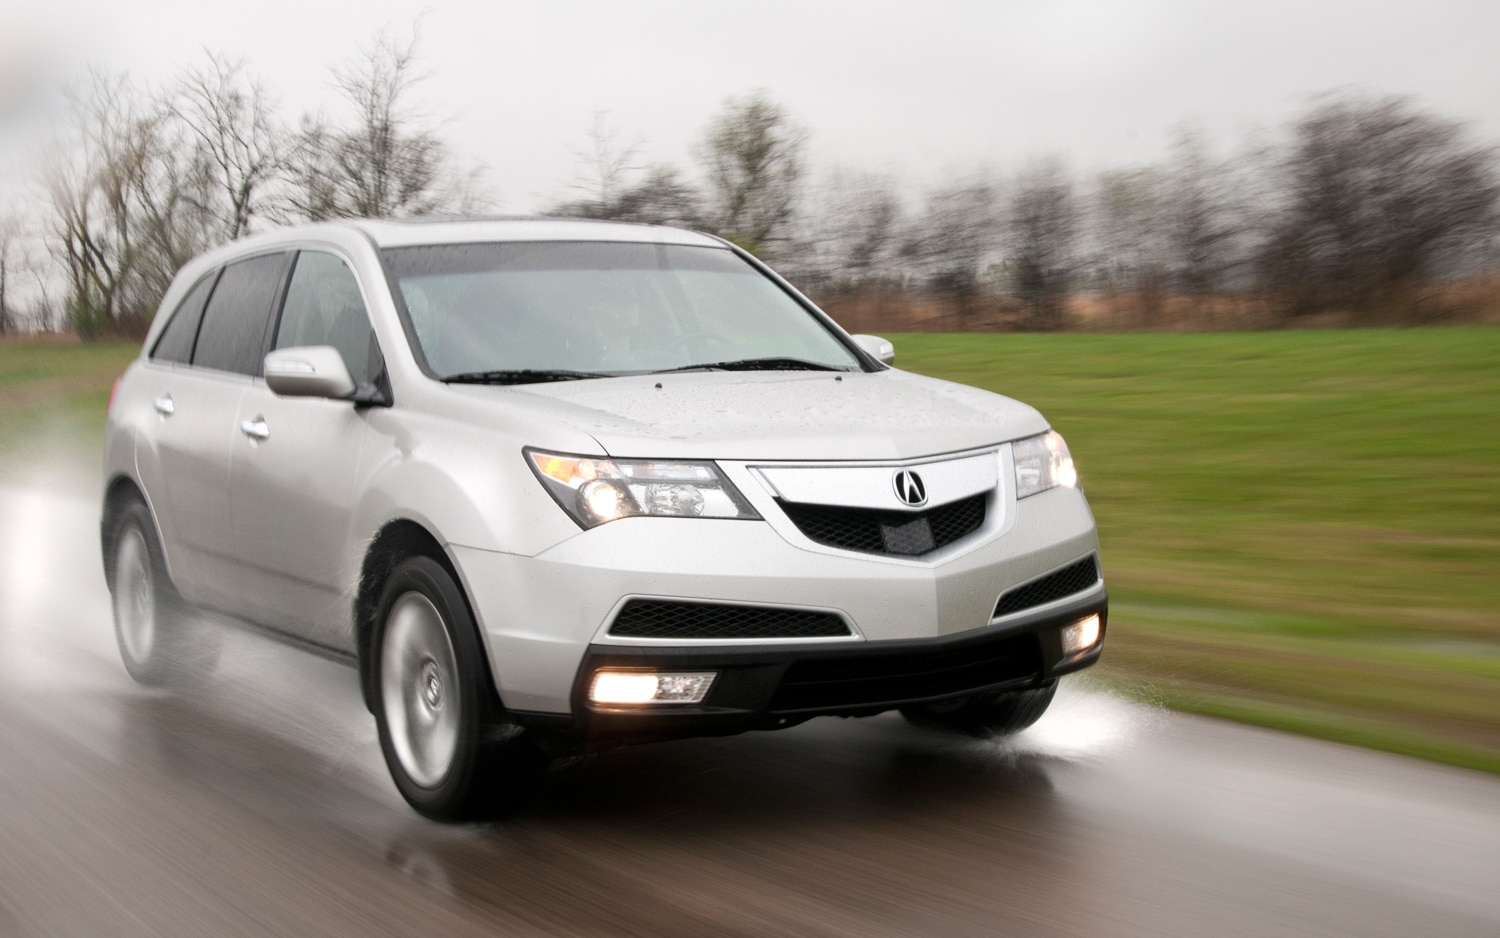 sale marietta l acura used c near main ga mdx htm for stock